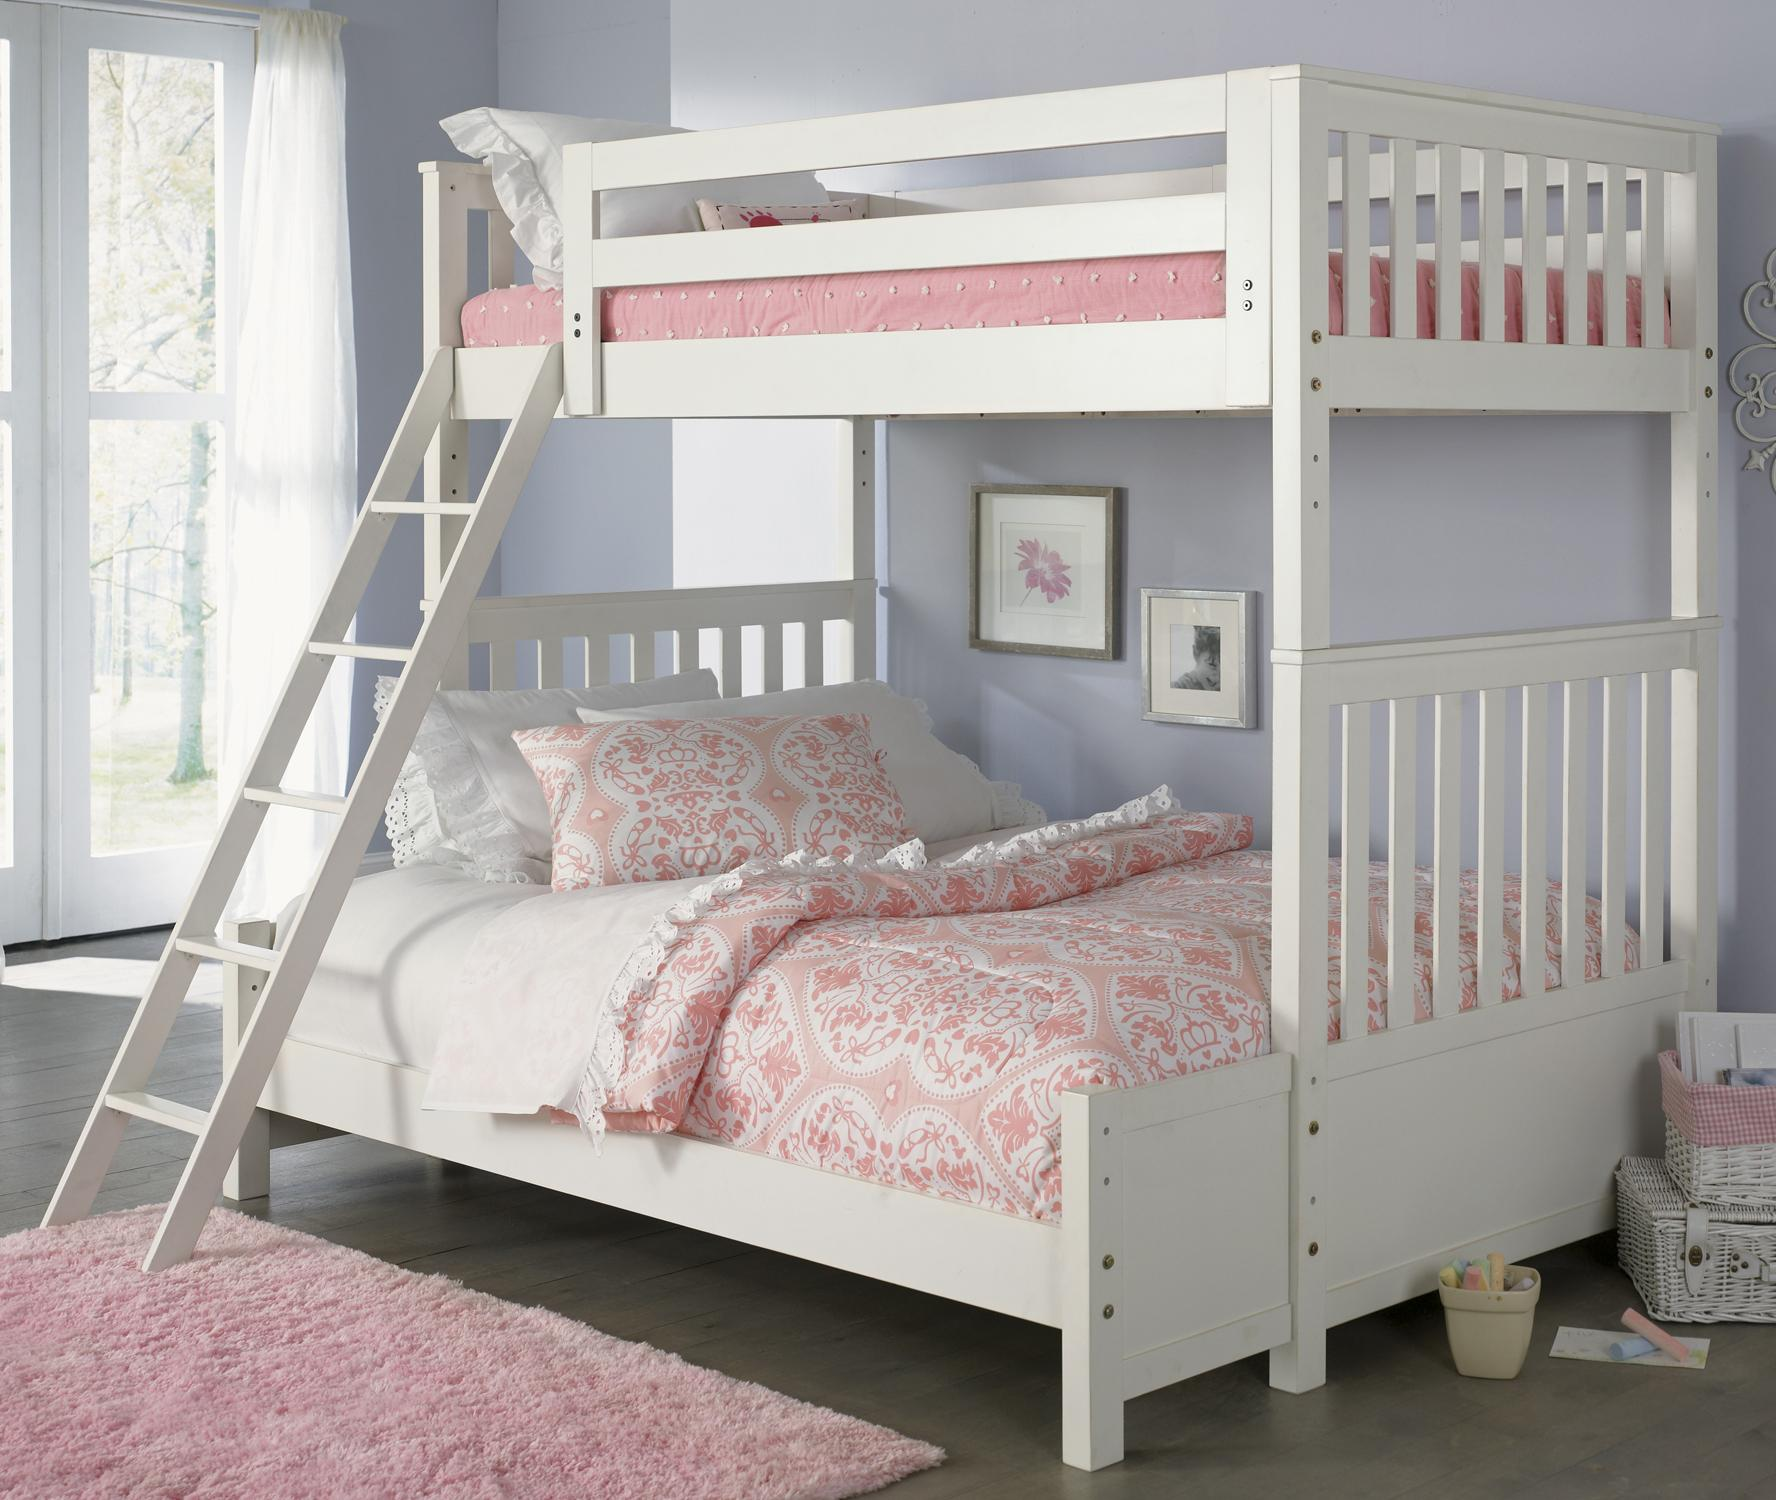 Liberty Furniture Arielle Youth Bedroom Twin Over Full Bunkbed - Item Number: 352-YBUNK-SET204